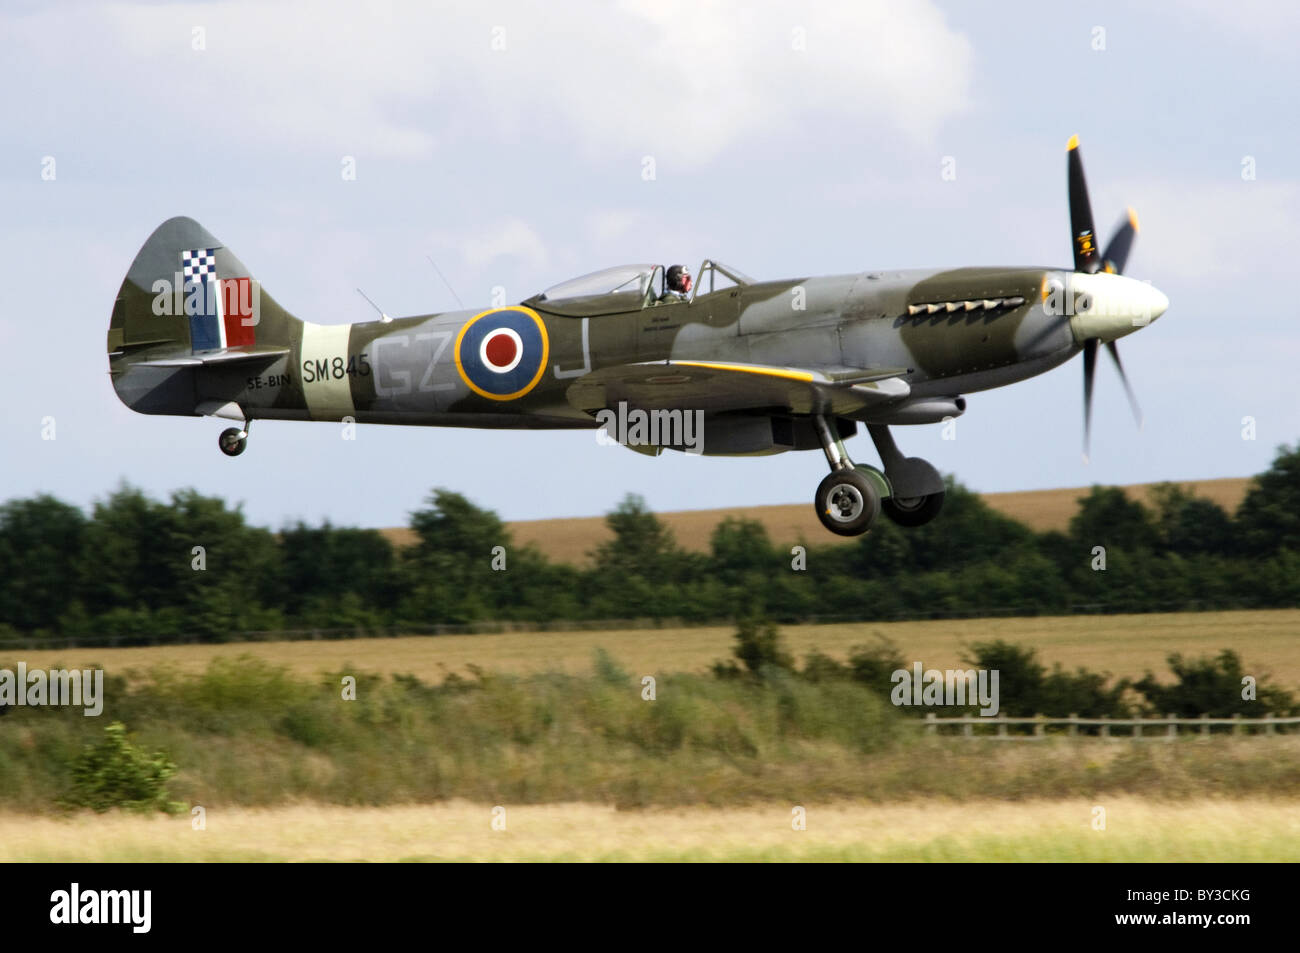 Supermarine Spitfire FR.XVIIIe in RAF camouflage landing after displaying at Duxford Flying Legends Airshow Stock Photo